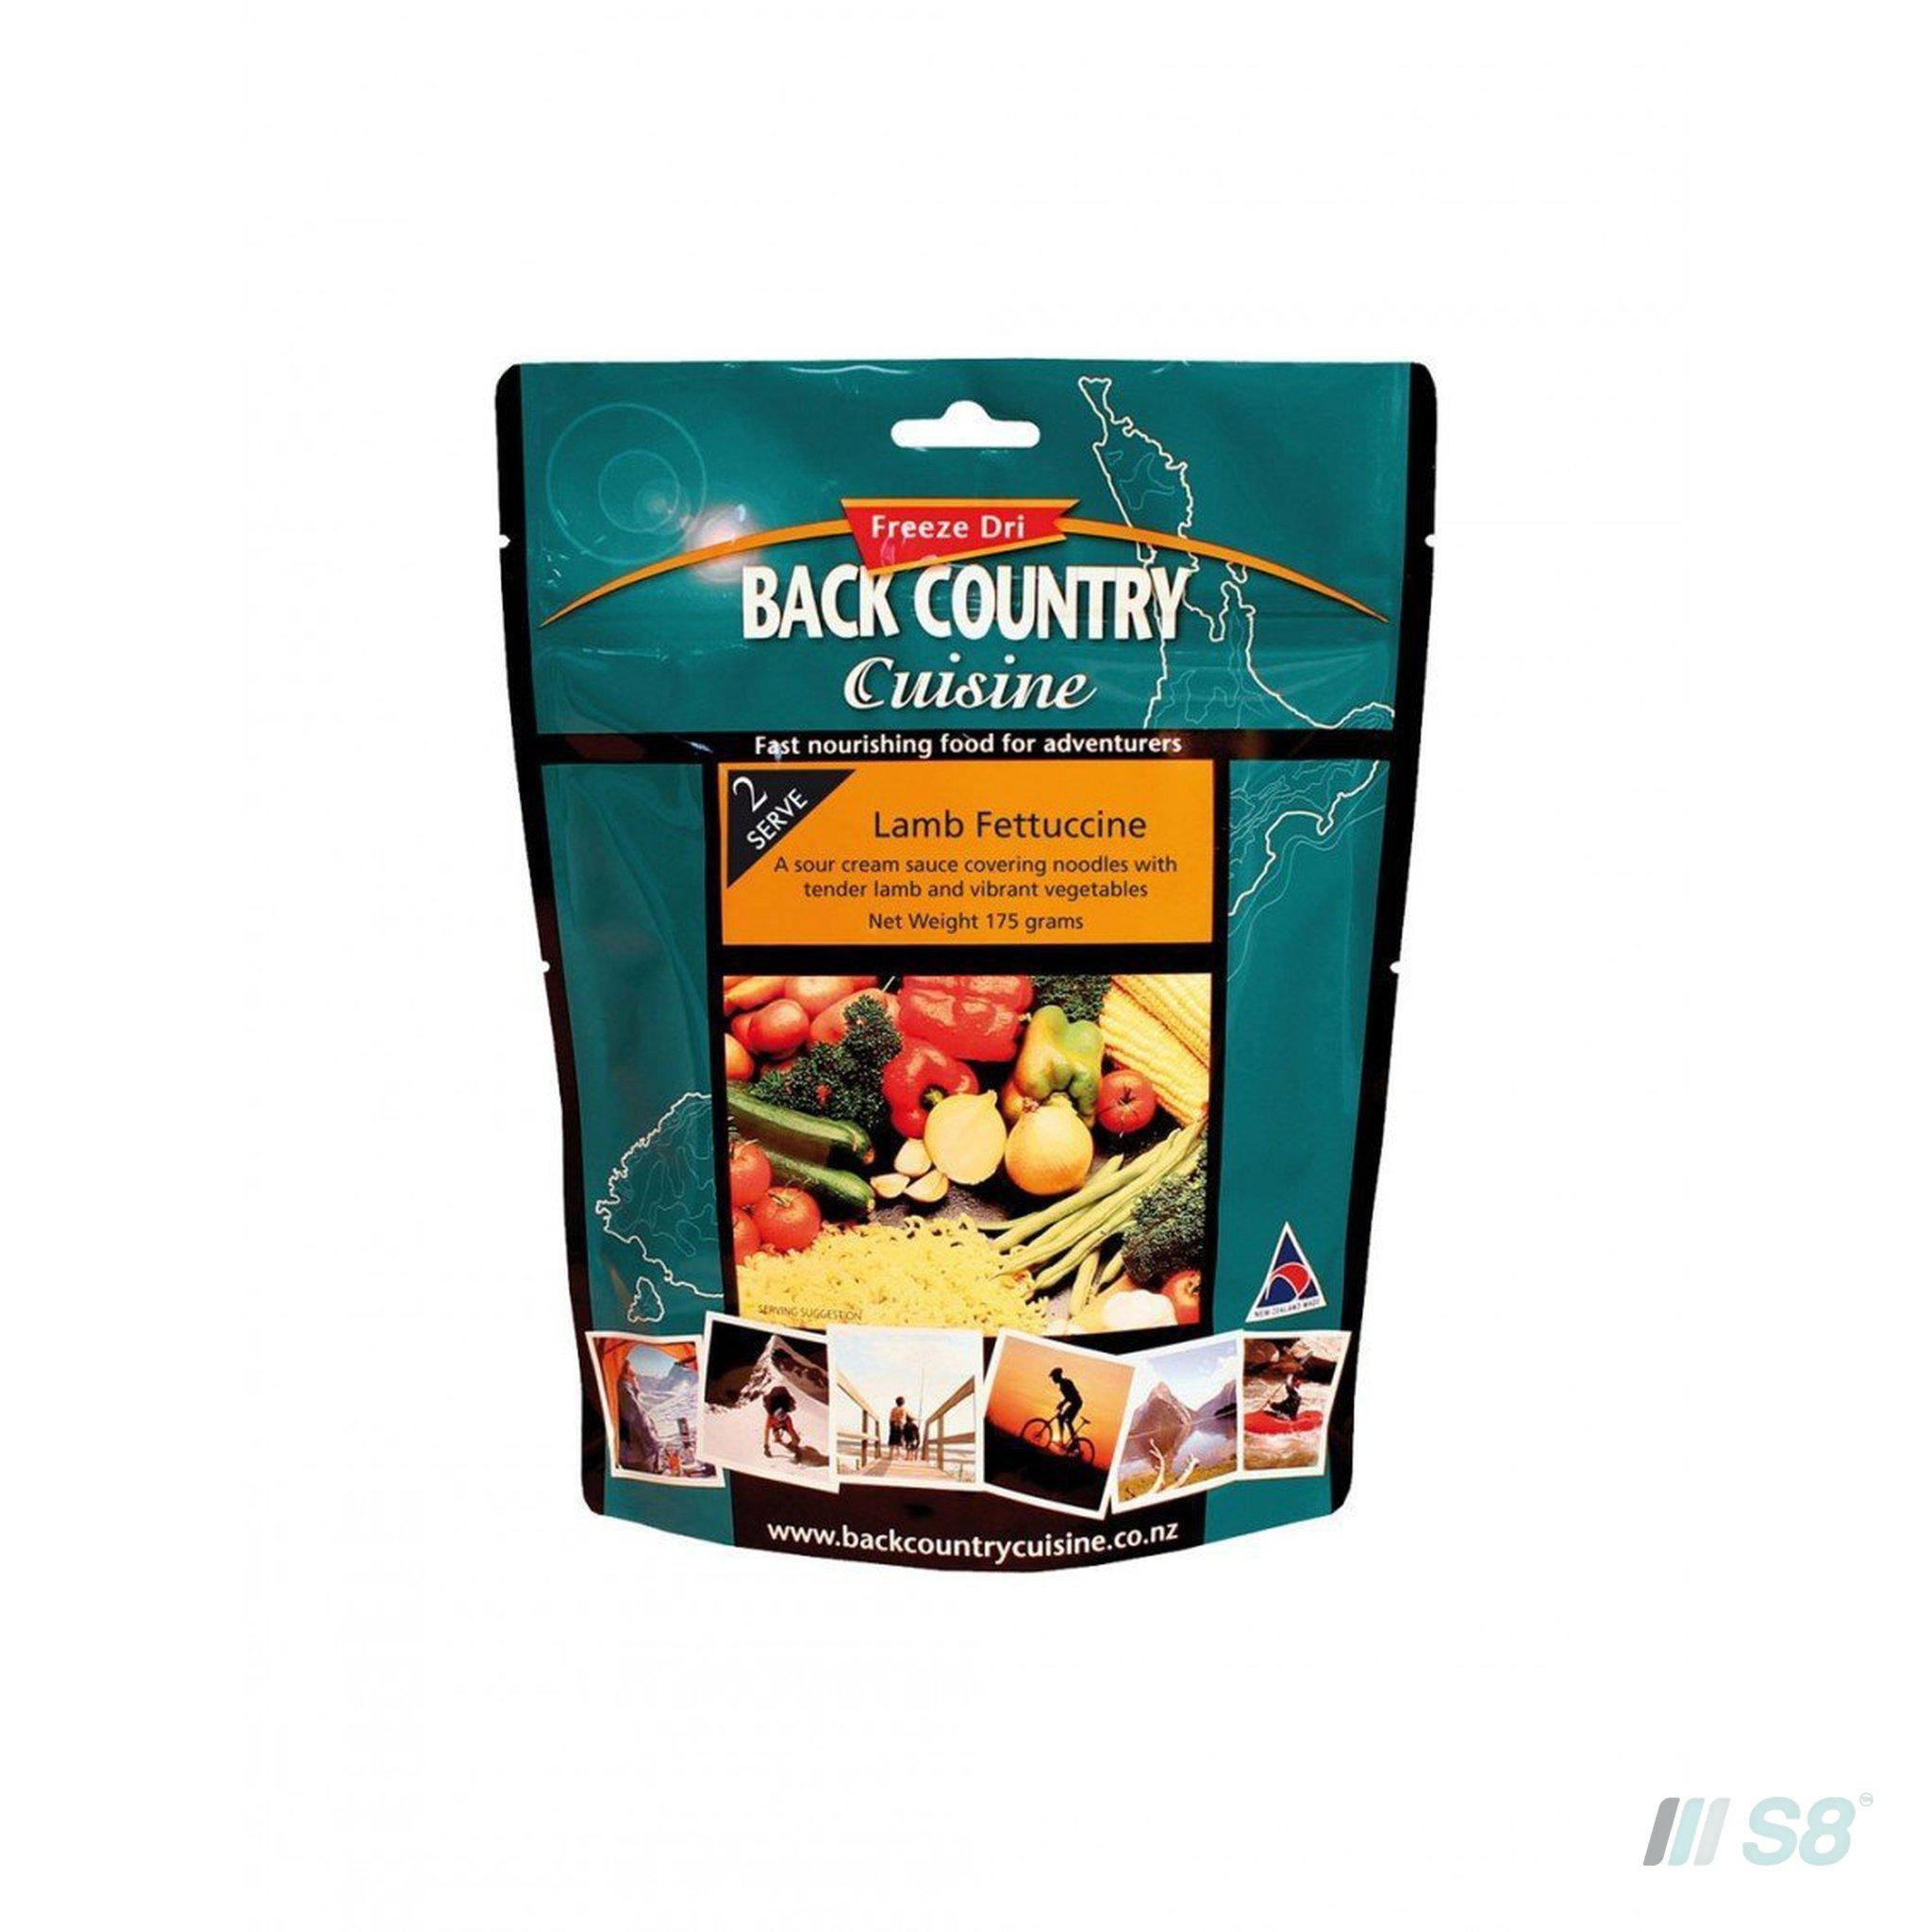 Back Country Cuisine Lamb Fettuccine-BCC-S8 Products Group